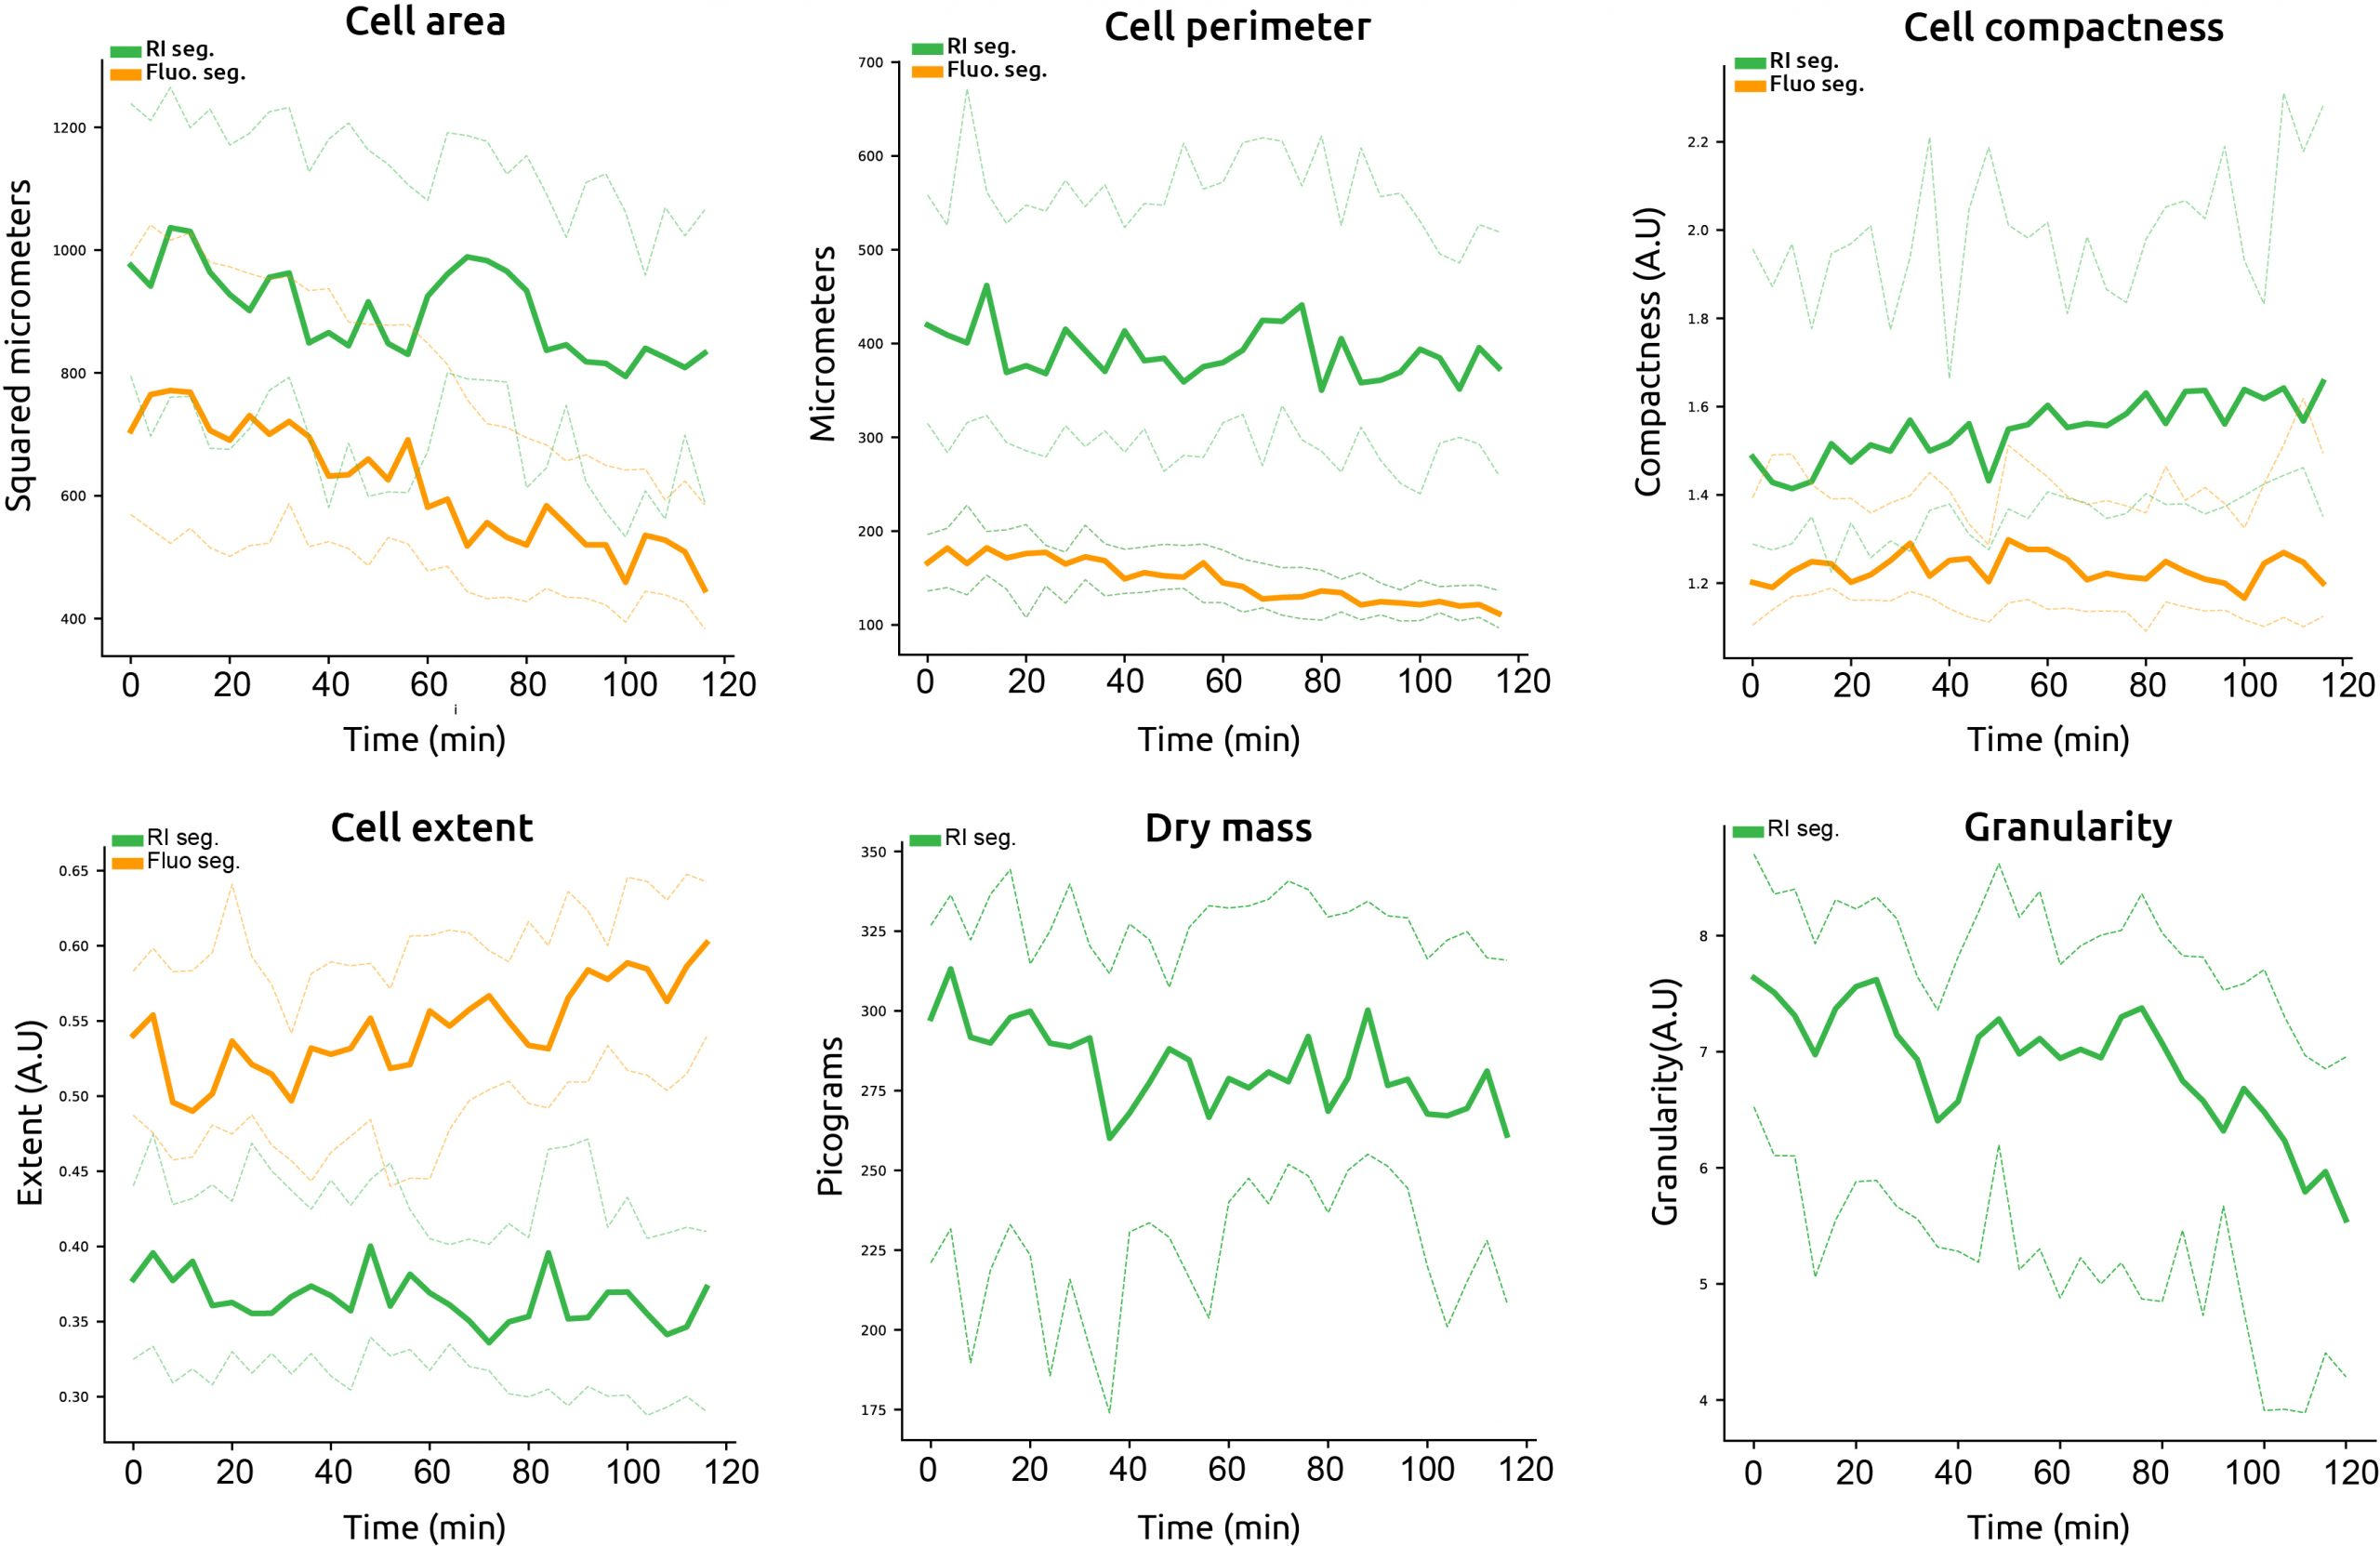 How are cell metrics impacted?